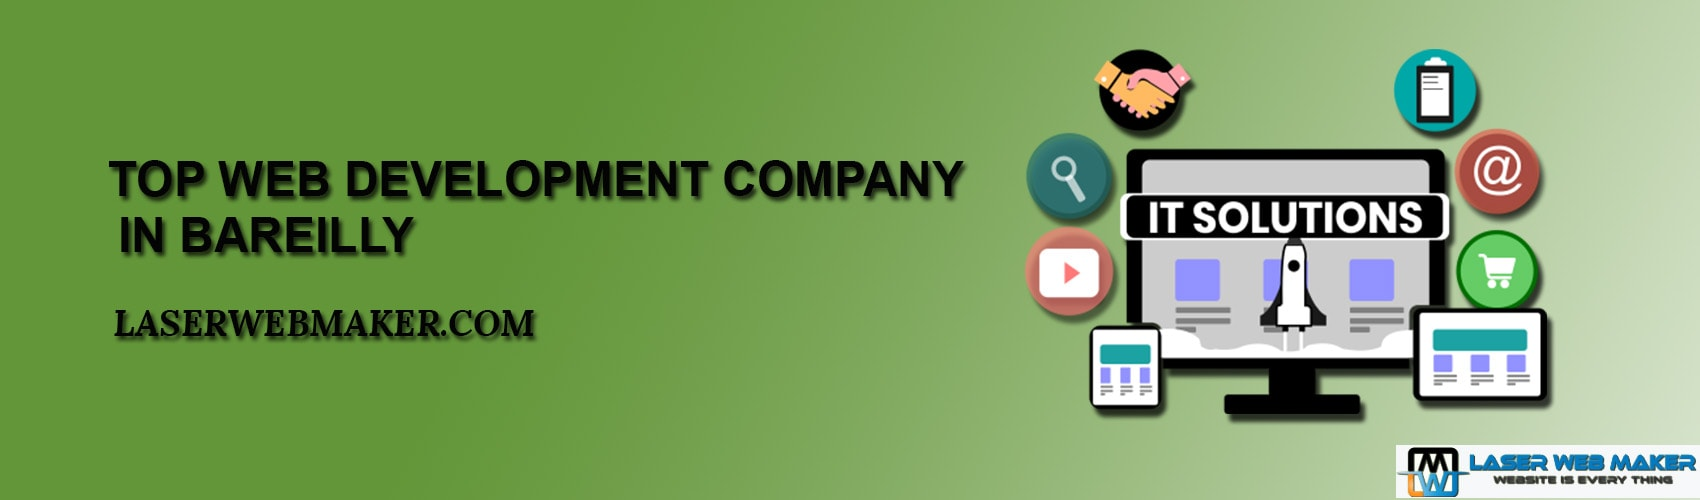 Top Web Development Company In Bareilly